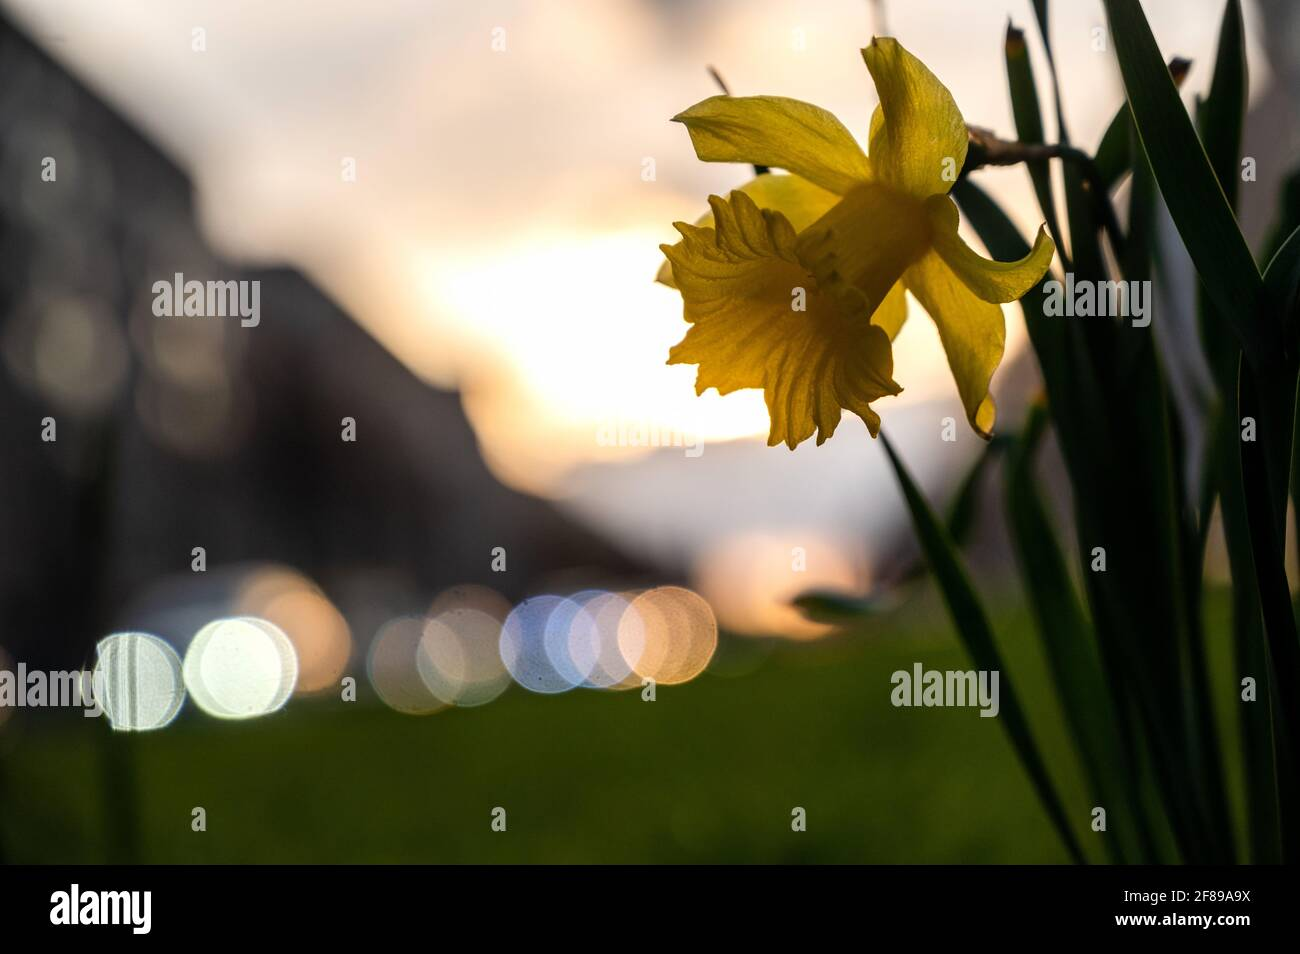 Berlin, Germany. 12th Apr, 2021. A daffodil blooms on Frankfurter Allee during sunset. Credit: Christophe Gateau/dpa/Alamy Live News Stock Photo